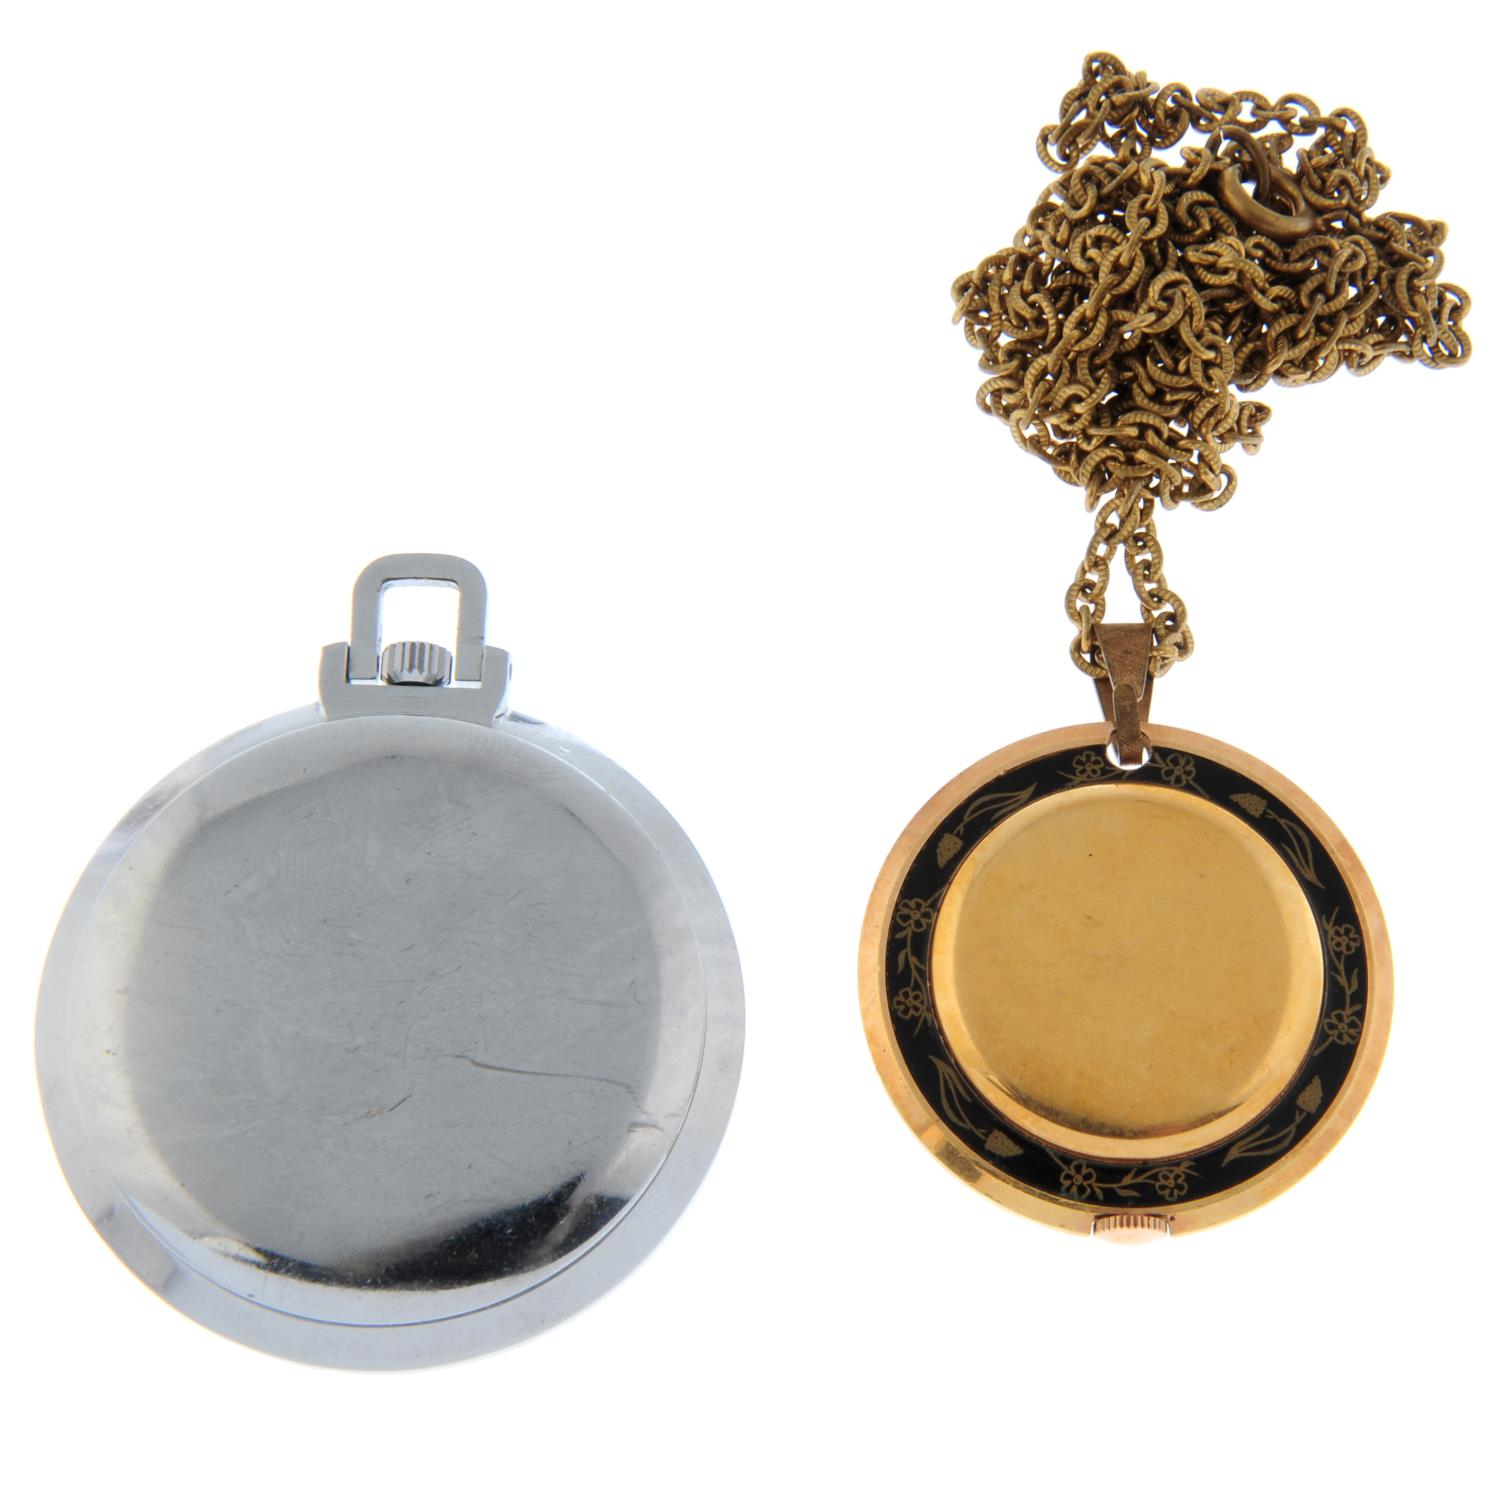 An open face pocket watch by Waltham. - Image 5 of 5